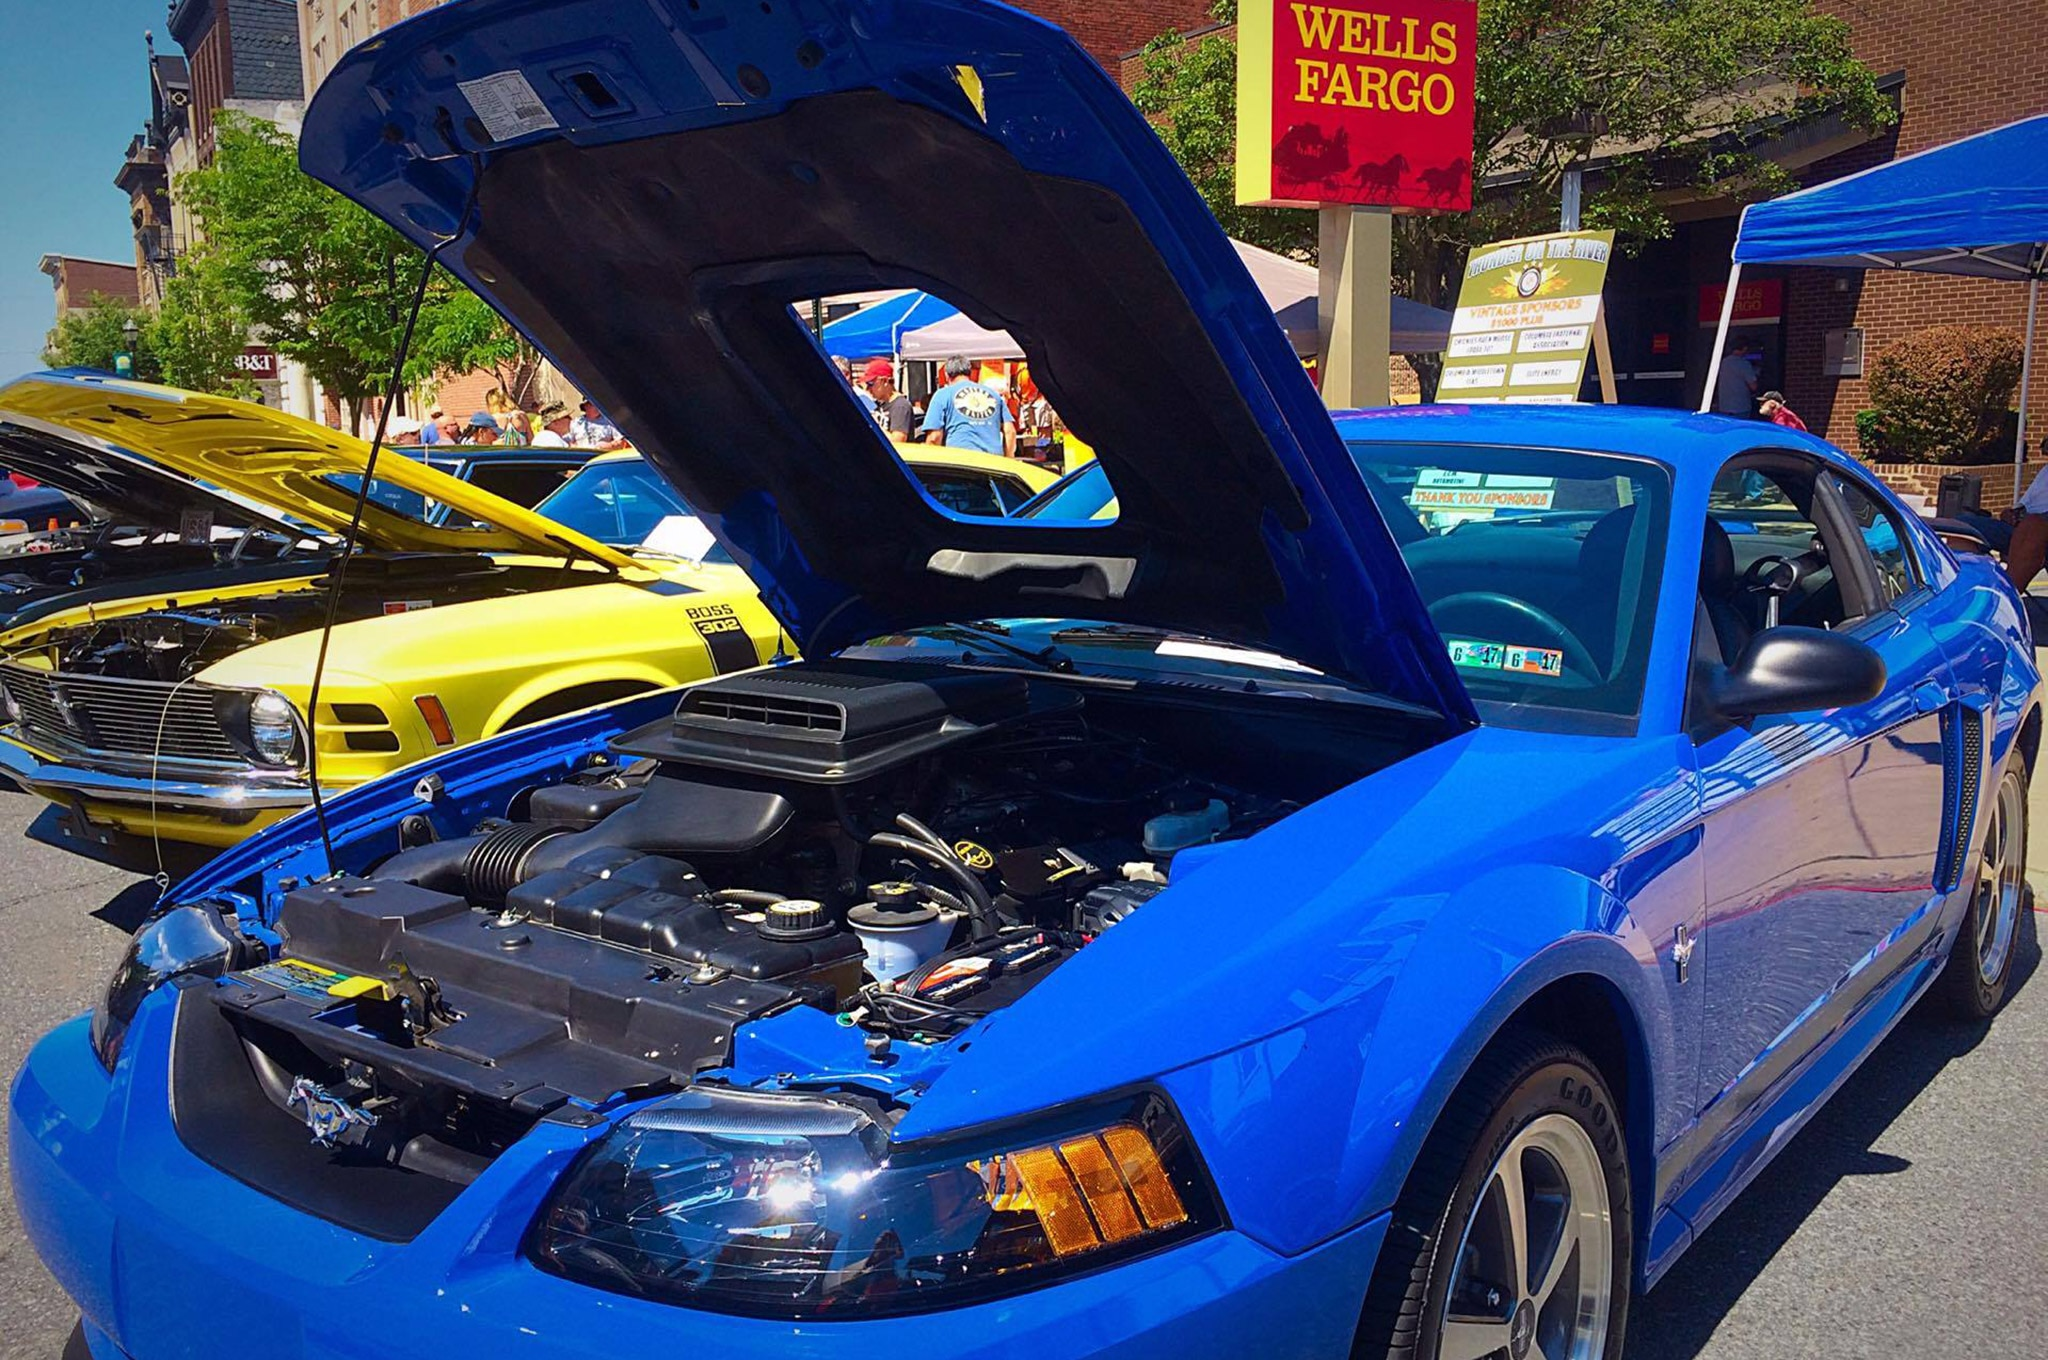 2003 Ford Mustang Mach 1 Azure Blue 017 Photo 140342569 Mustang Girl Monday Carlee Shoemaker And Her 2003 Mach 1